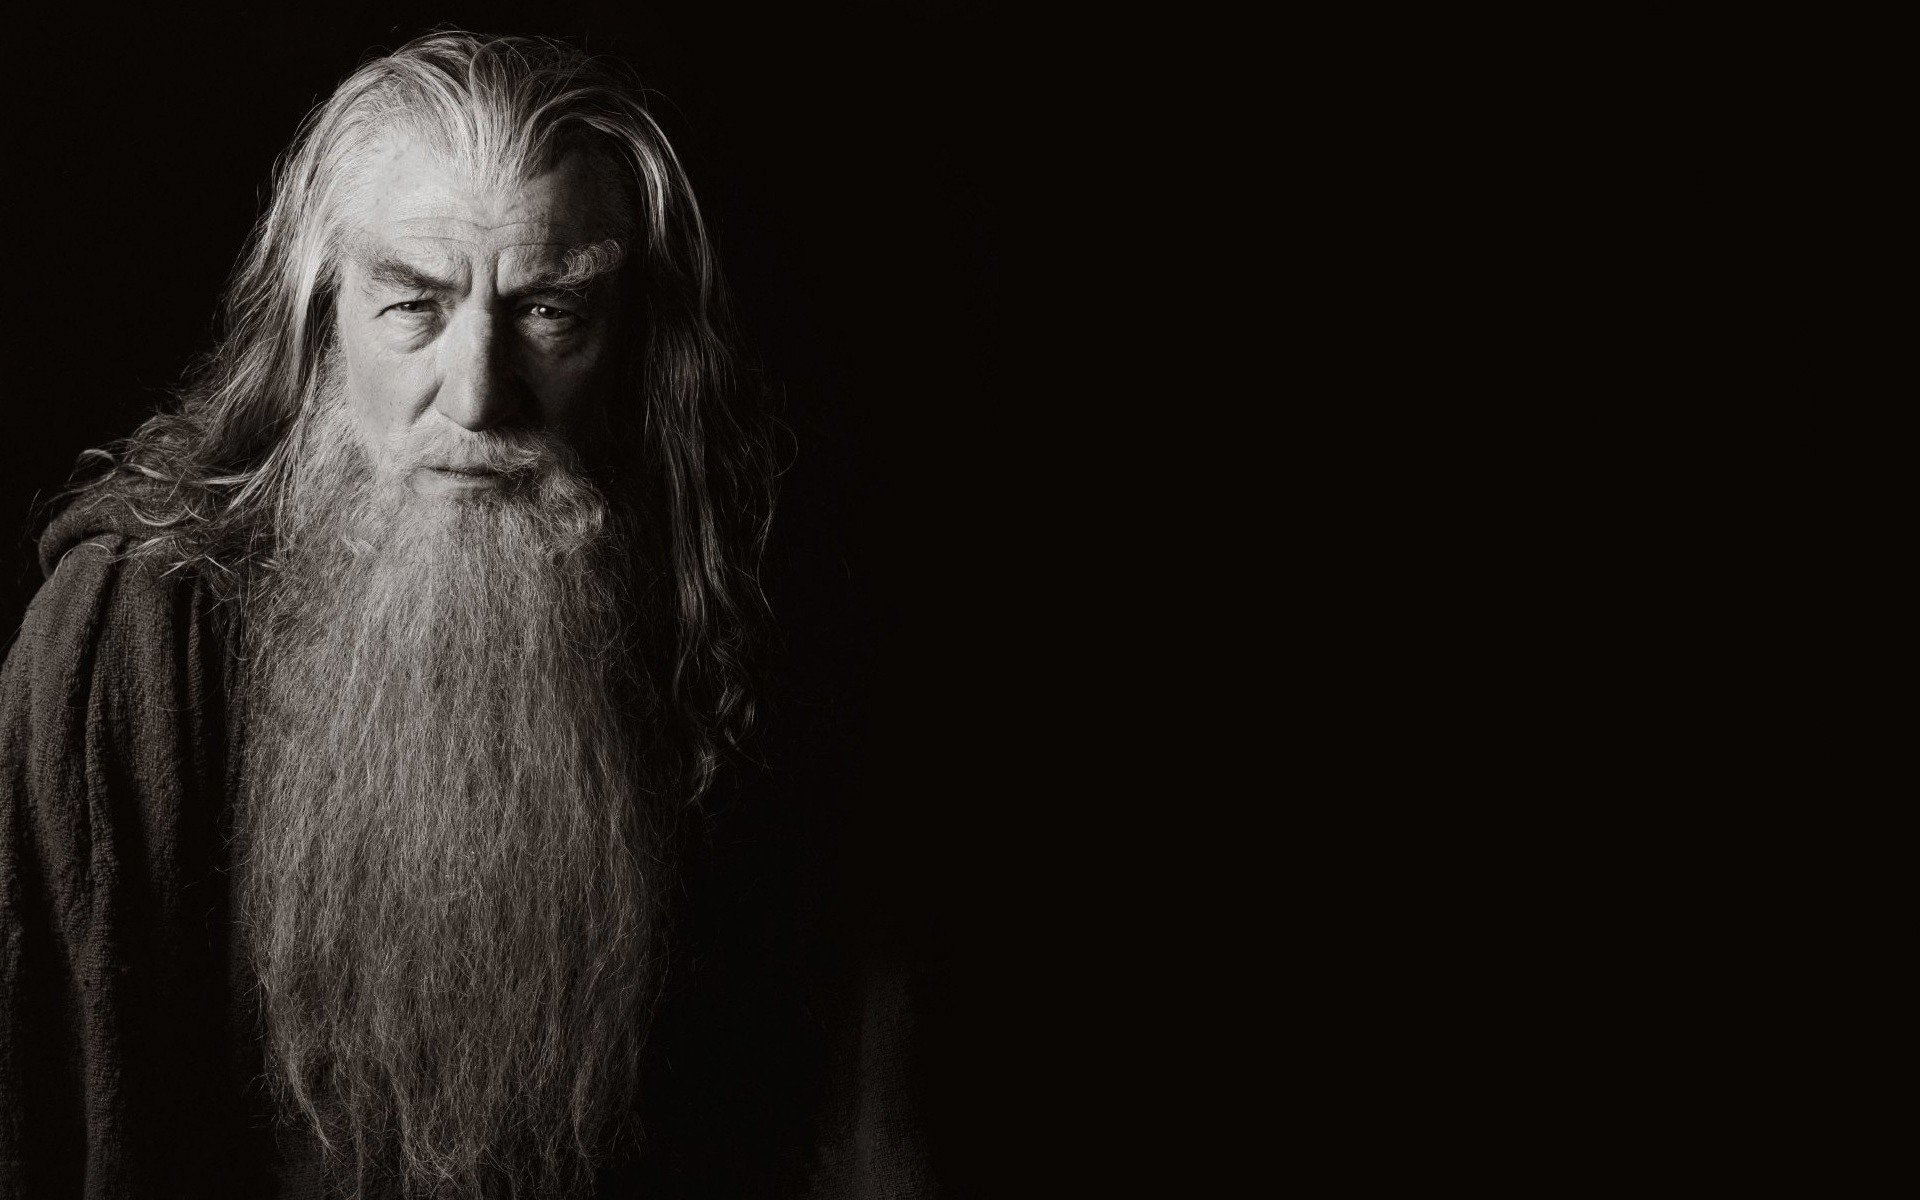 Gandalfs Fall Wallpaper Movies Ian Mckellen Sepia Gandalf The Lord Of The